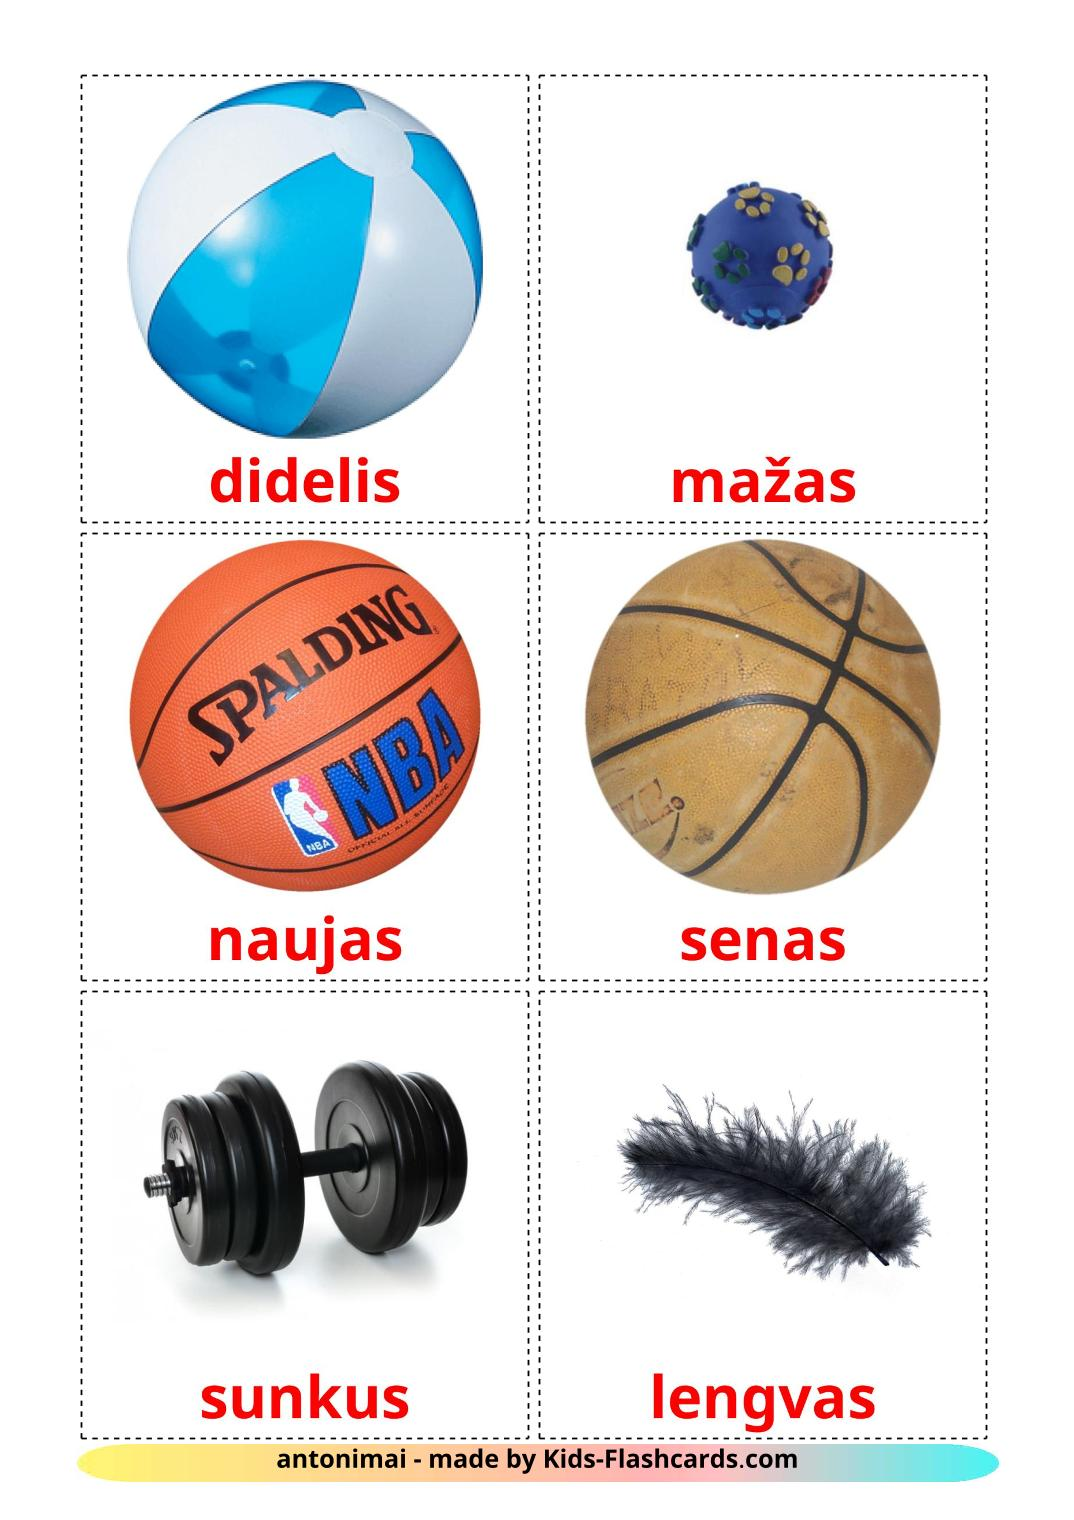 Opposites - 74 Free Printable lithuanian Flashcards